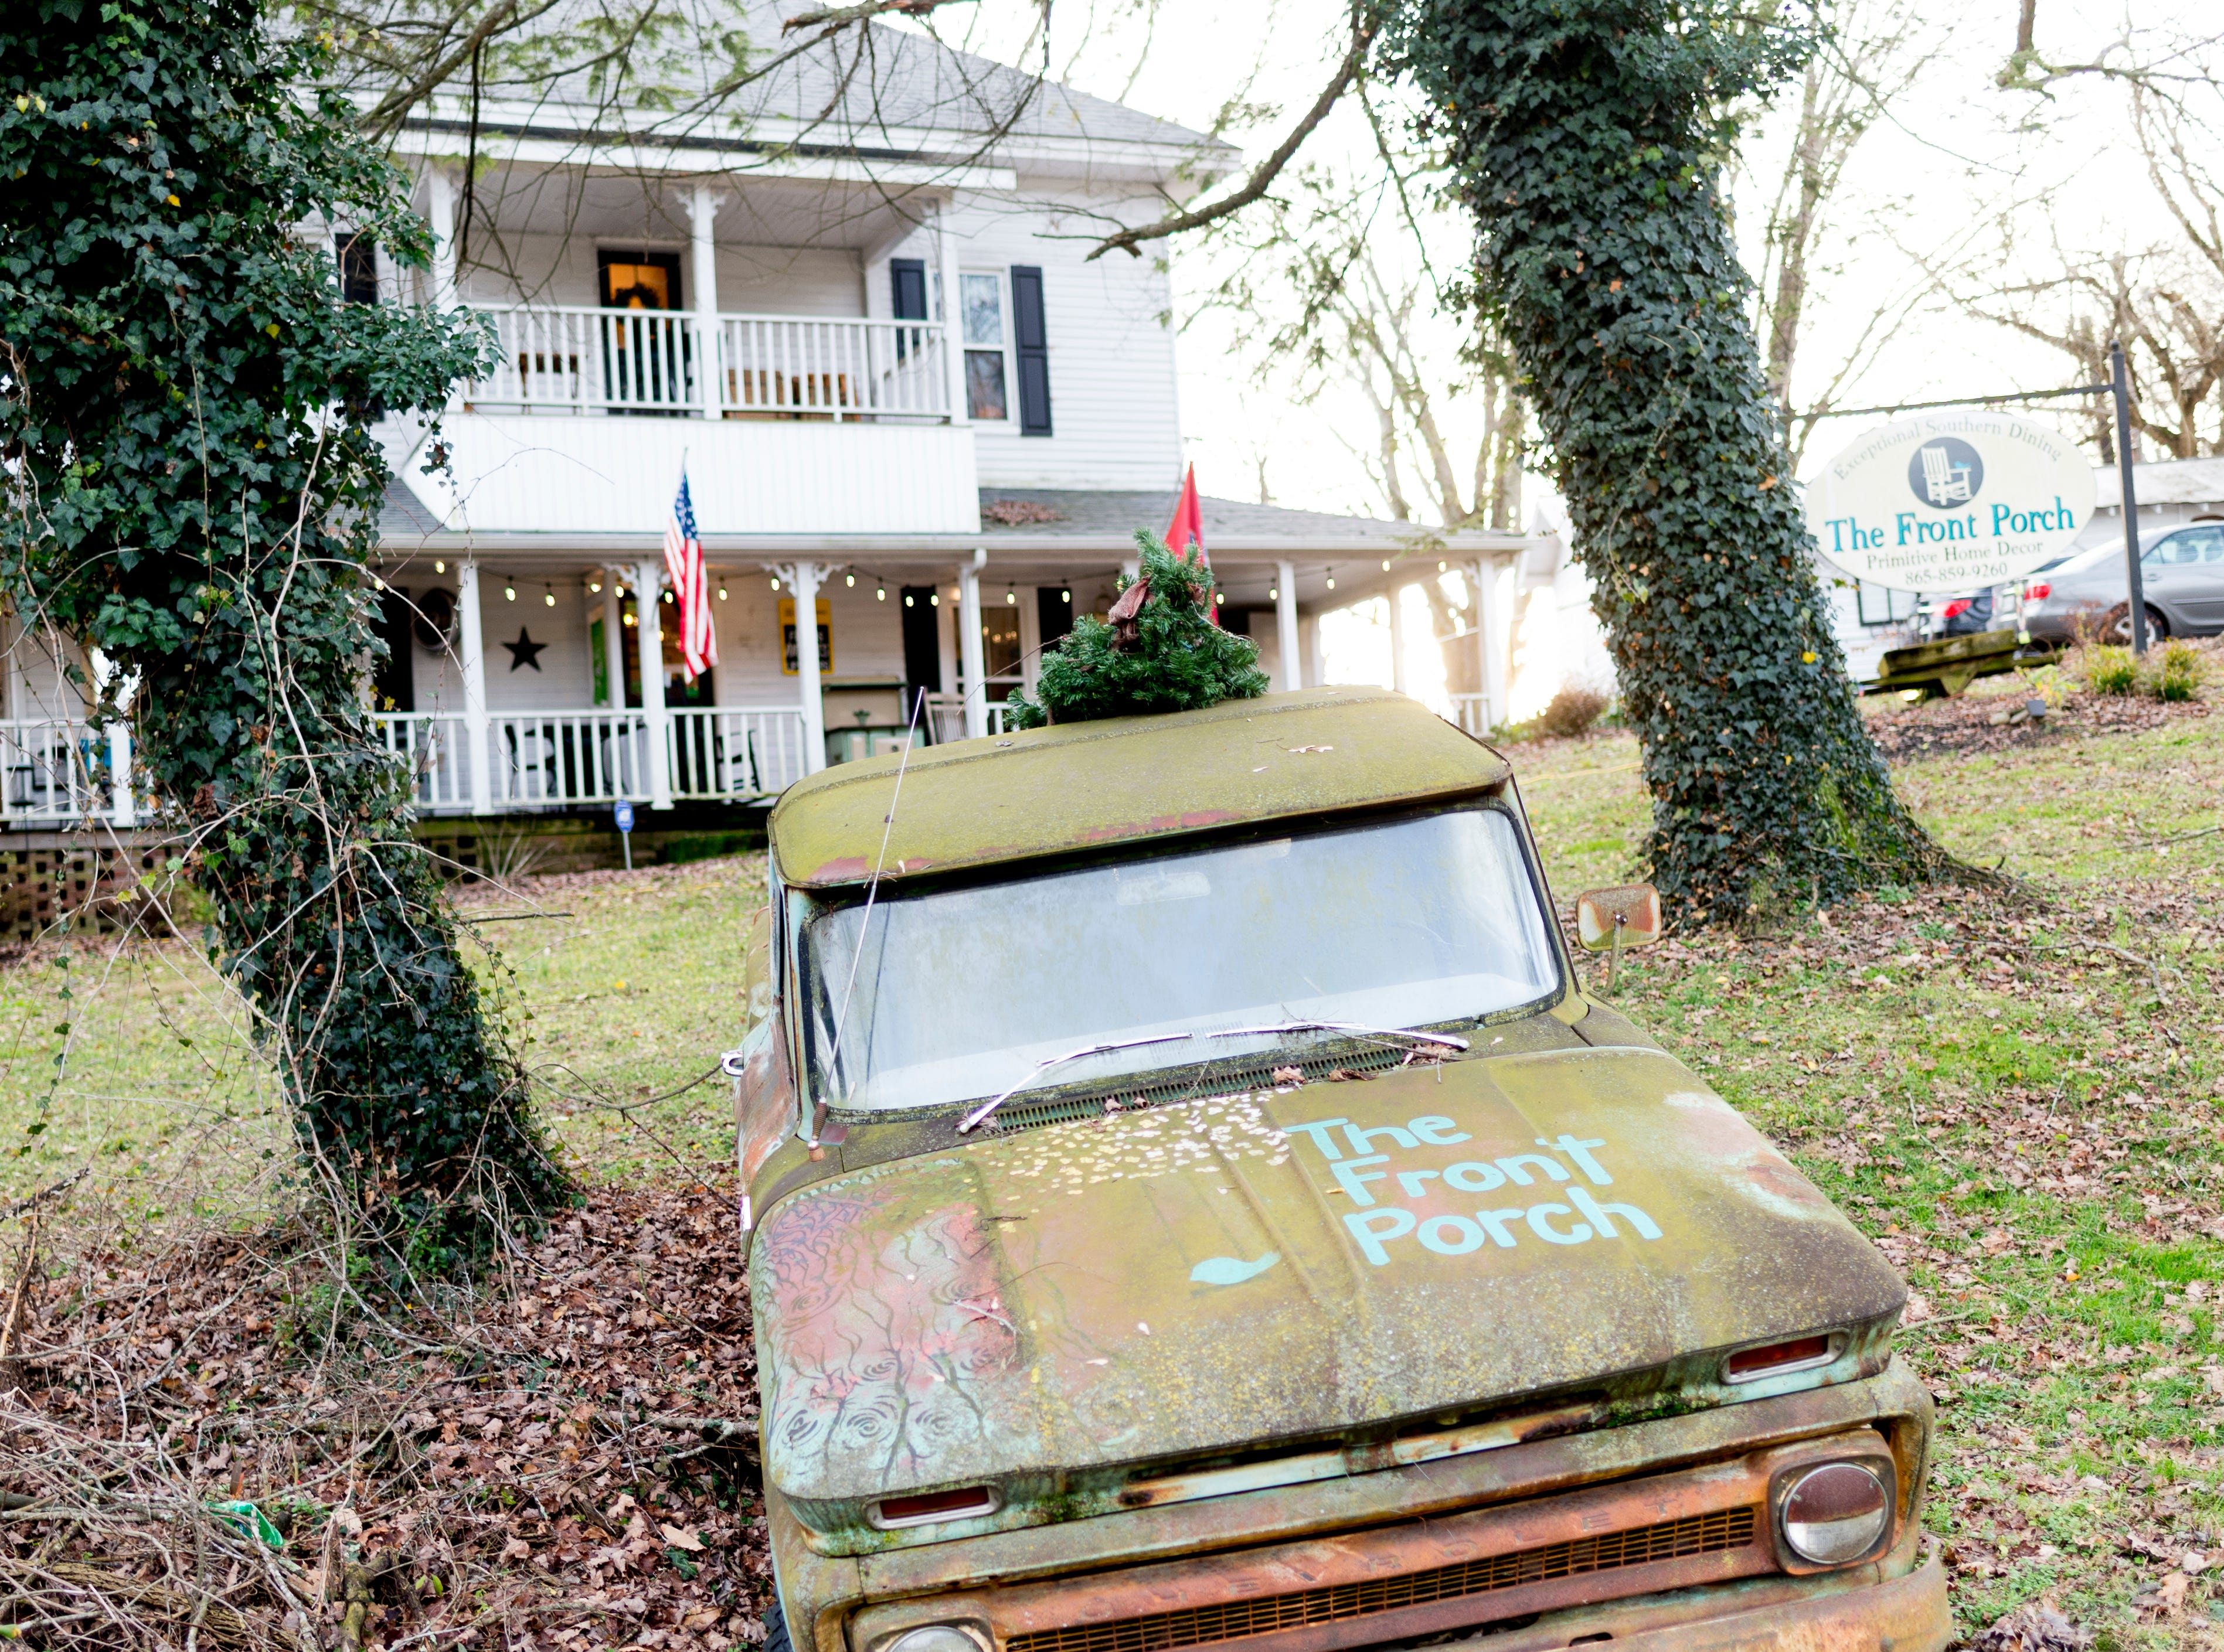 A vintage Chevrolet pickup sits in the lawn at The Front Porch Restaurant in Powell, Tennessee on Saturday, December 29, 2018. For five years, owner Bart Elkins has worked to revive that experience of the front porch being used as the focus for family and friends.